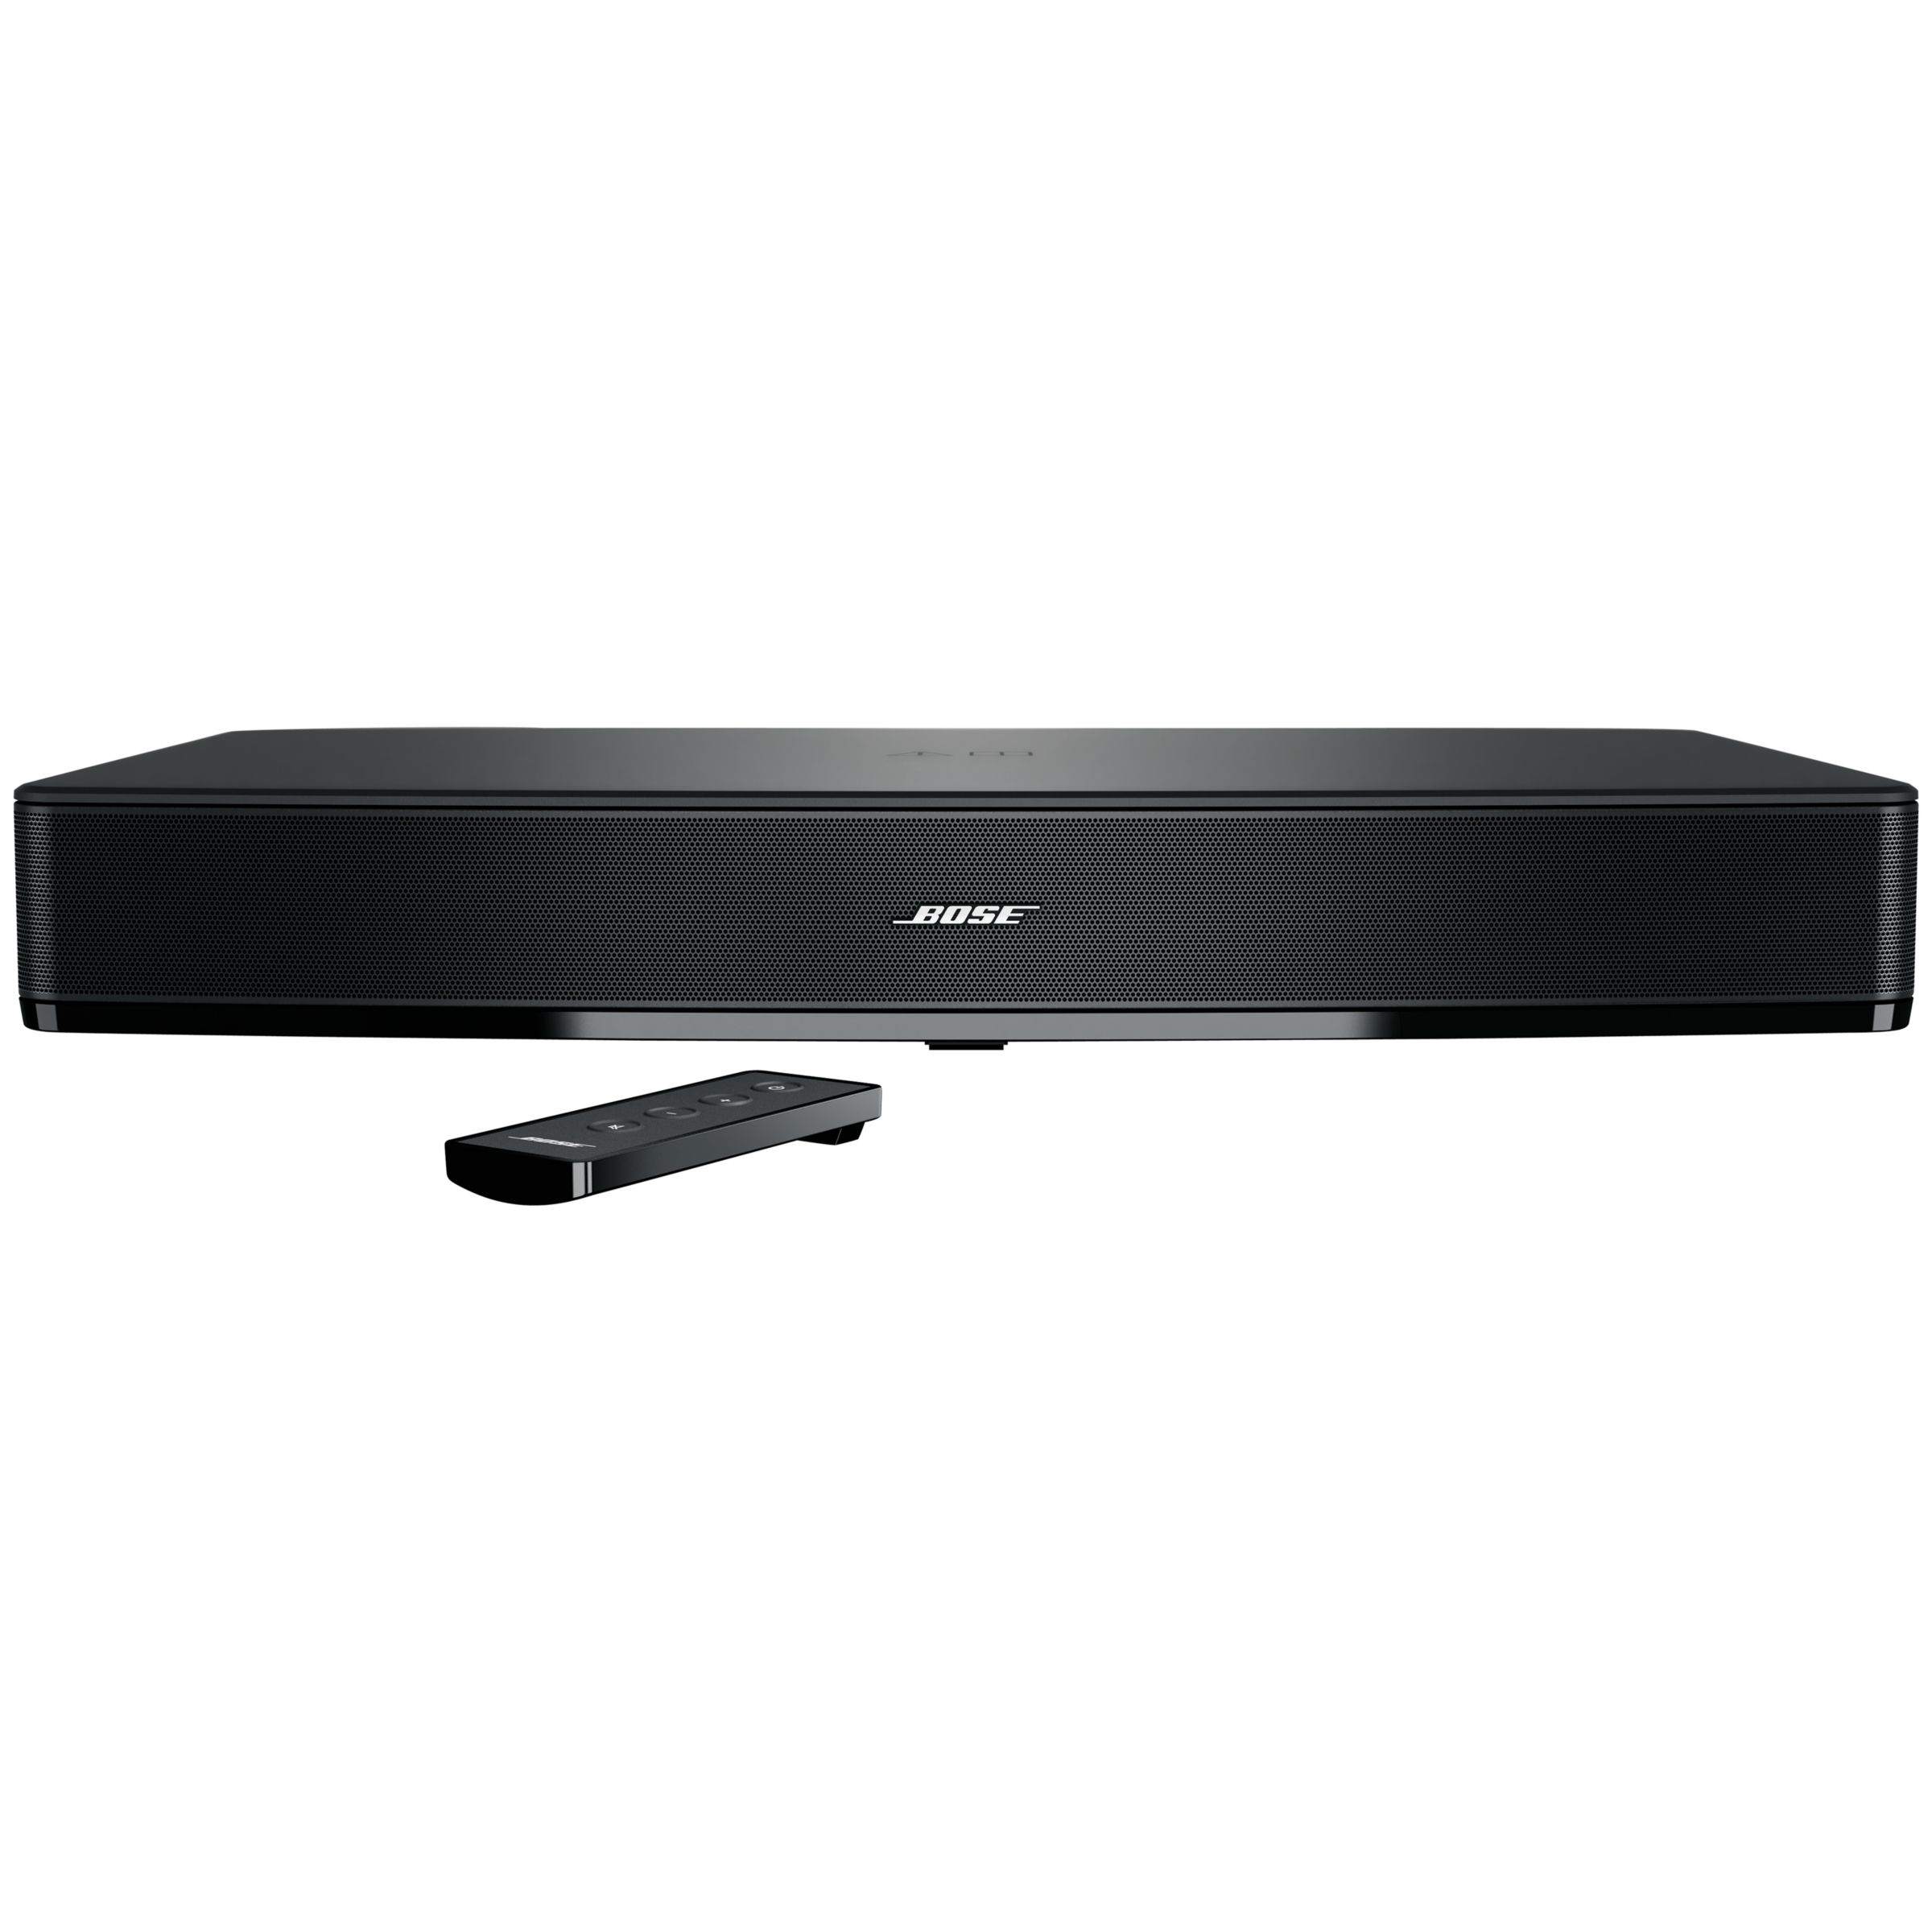 bose solo tv sound system black dvd player reviews dvd player store. Black Bedroom Furniture Sets. Home Design Ideas